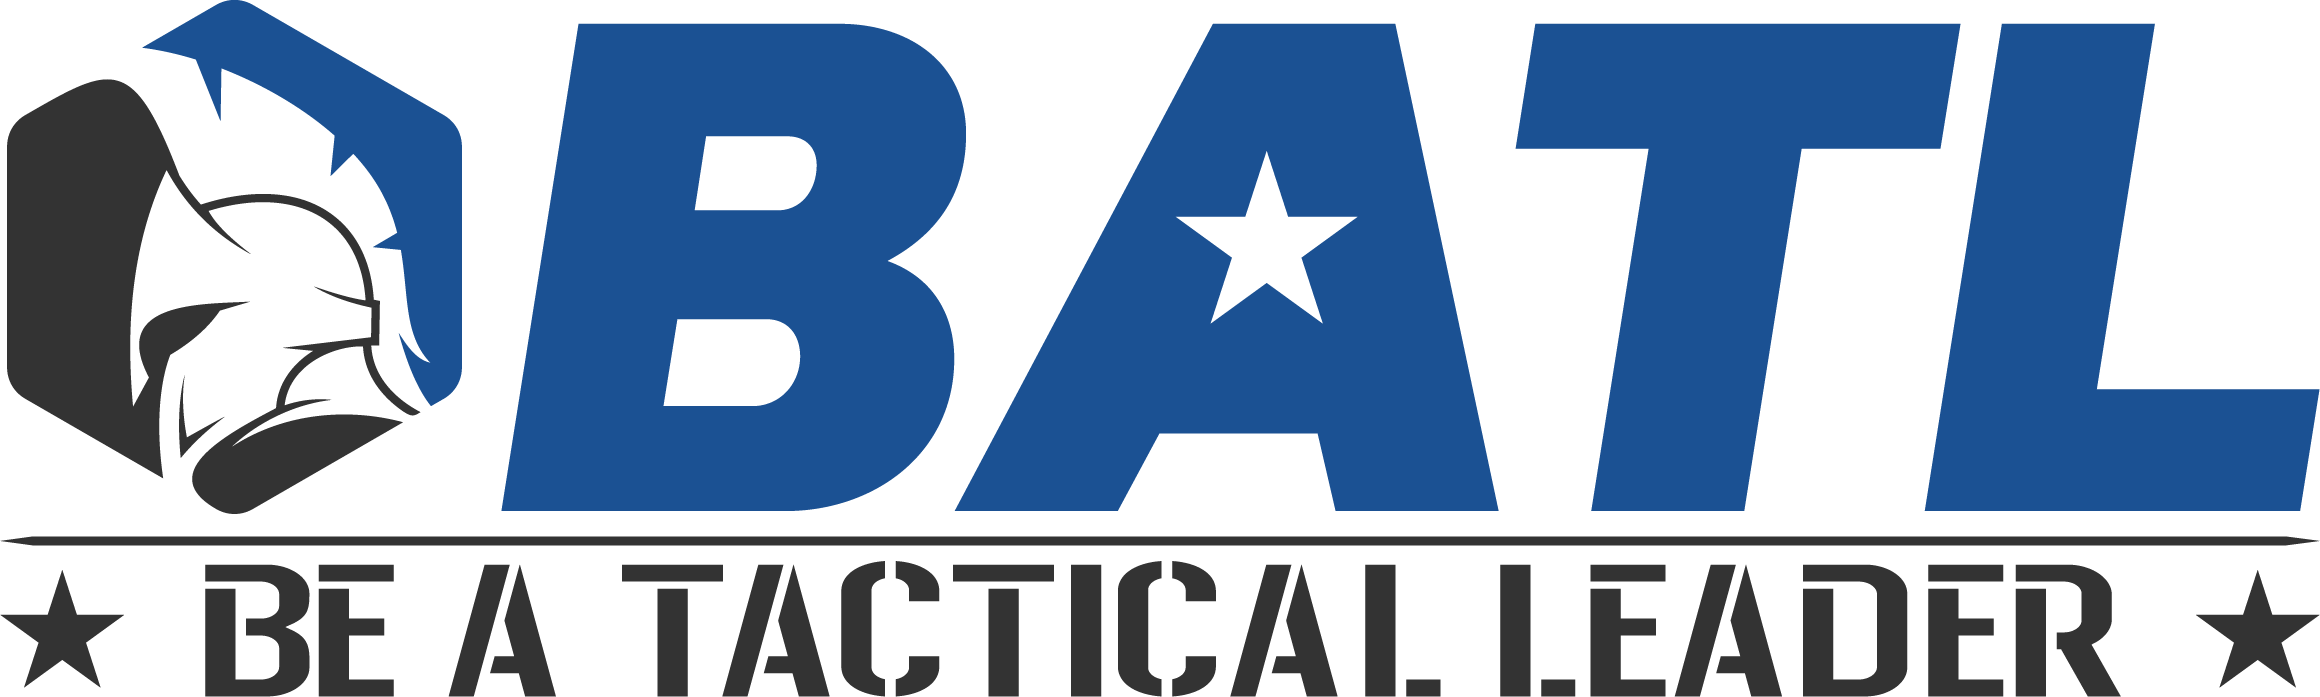 Be A Tactical Leader Logo